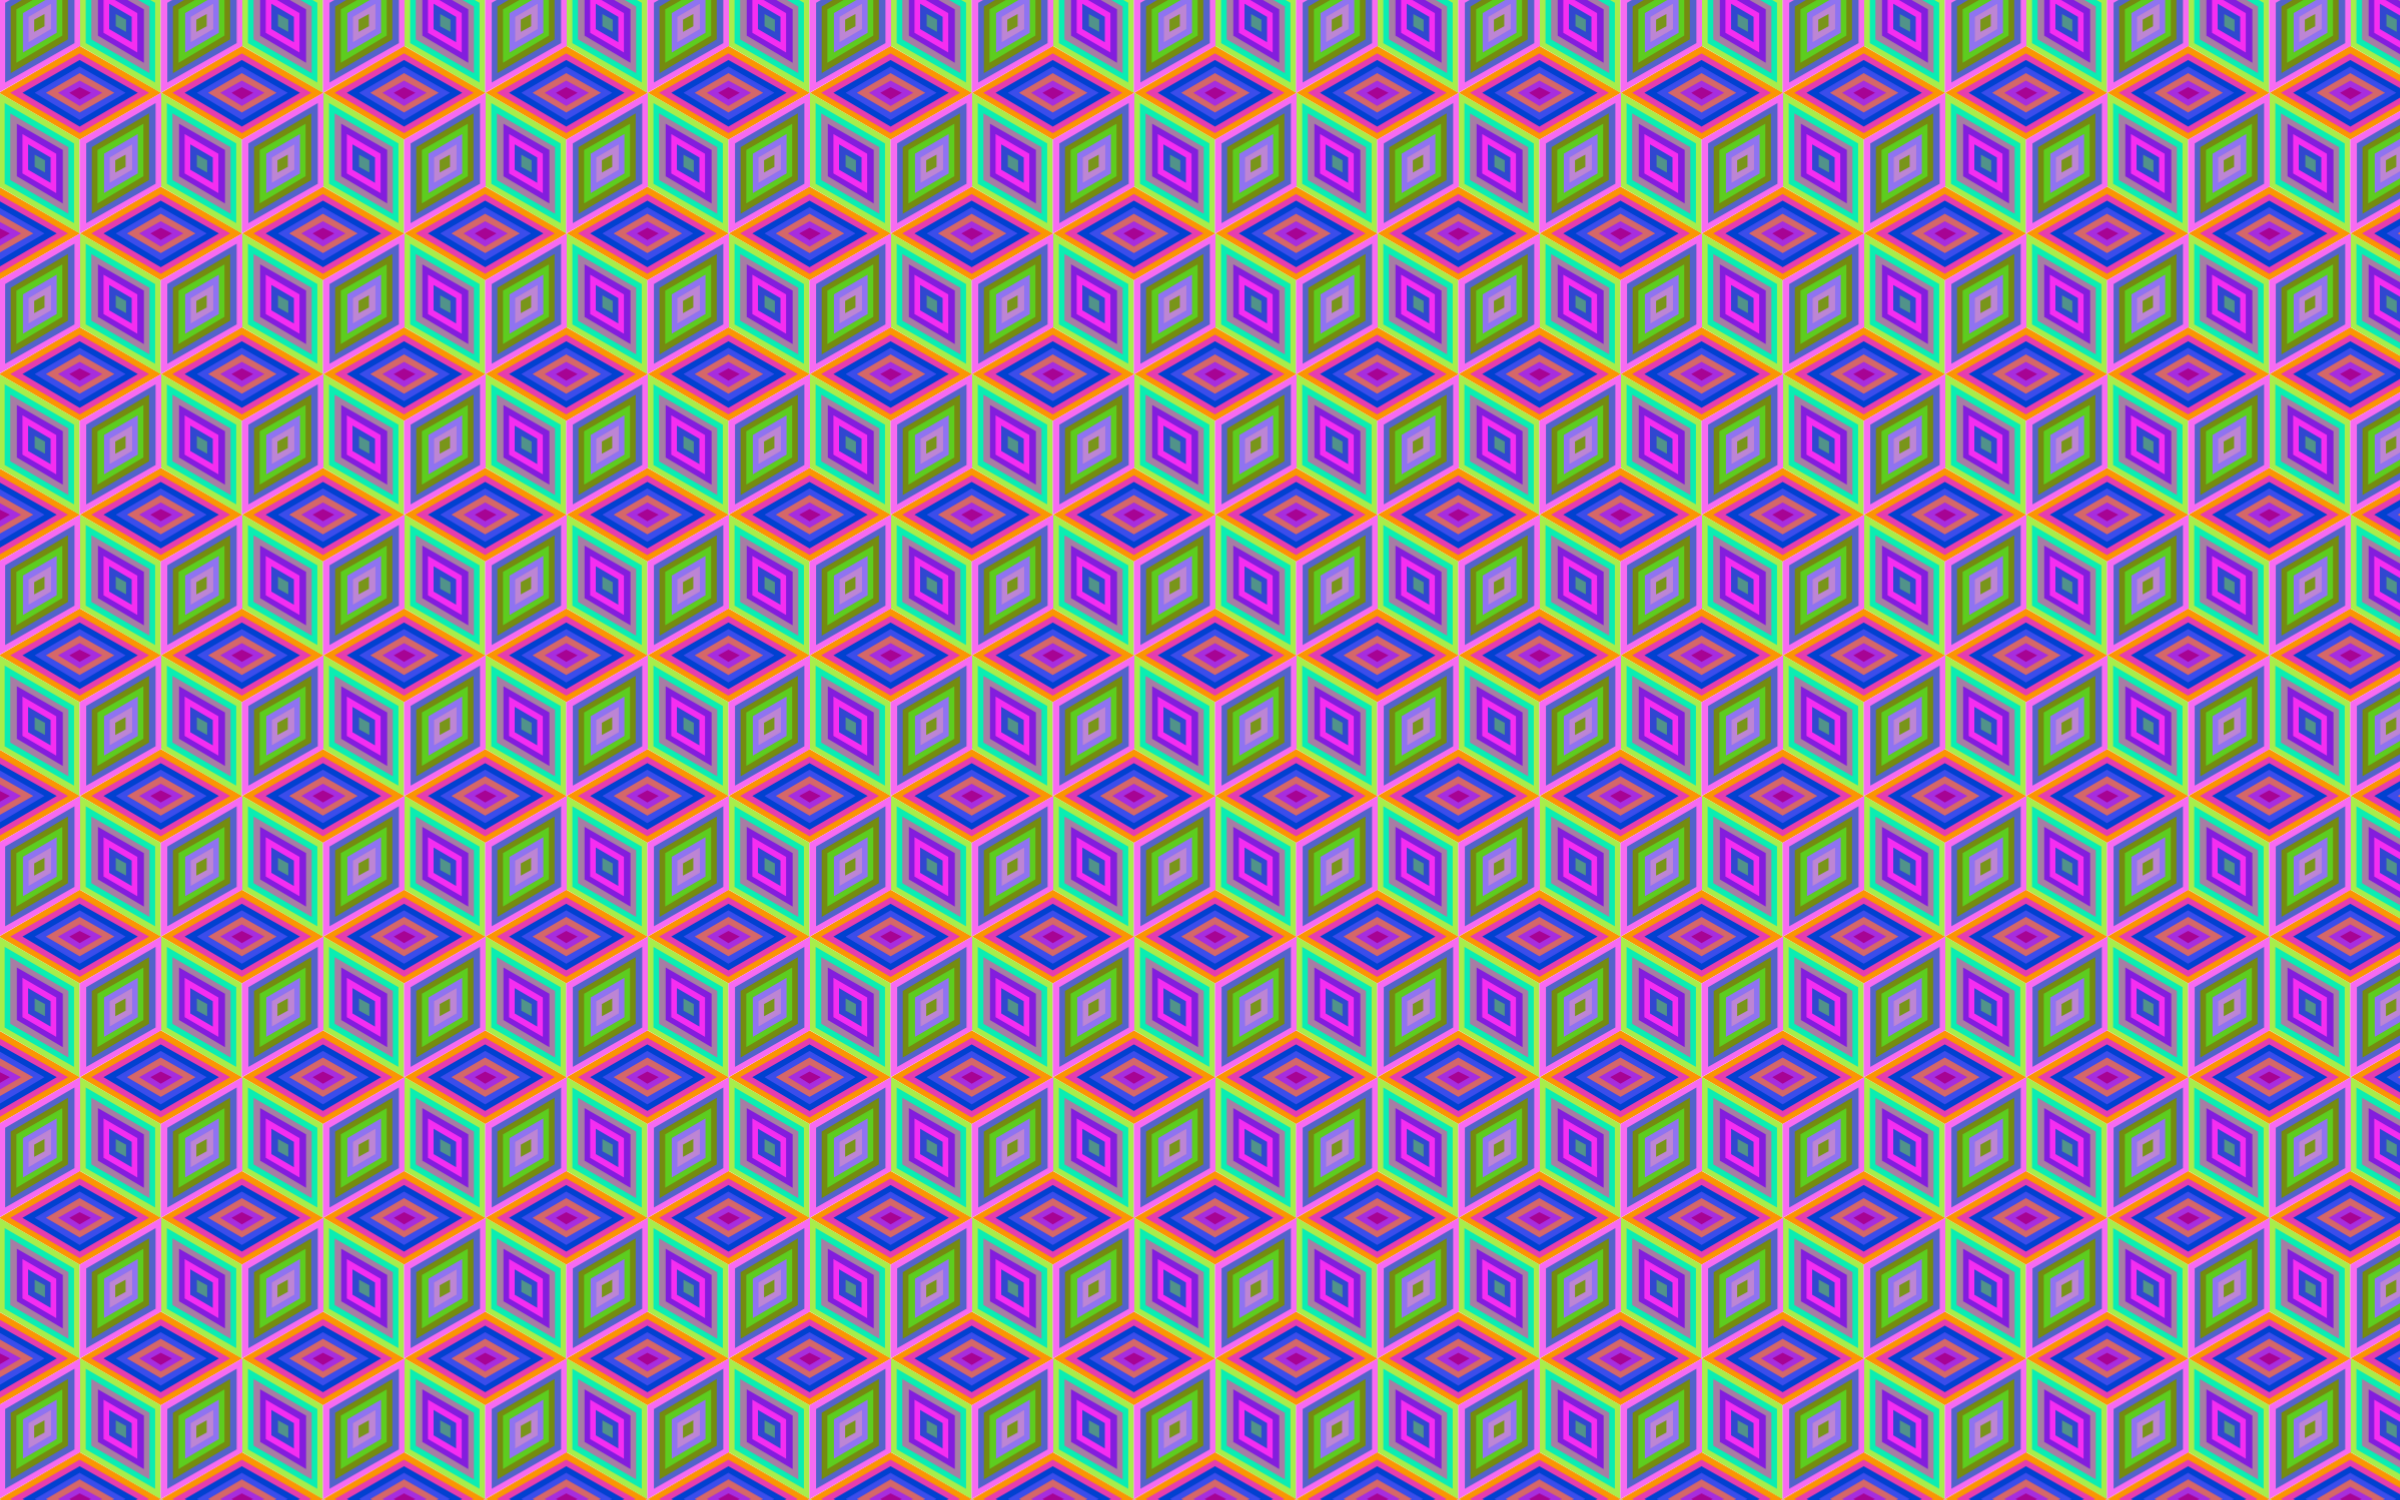 Clipart - Seamless Prismatic Isometric Cube Pattern